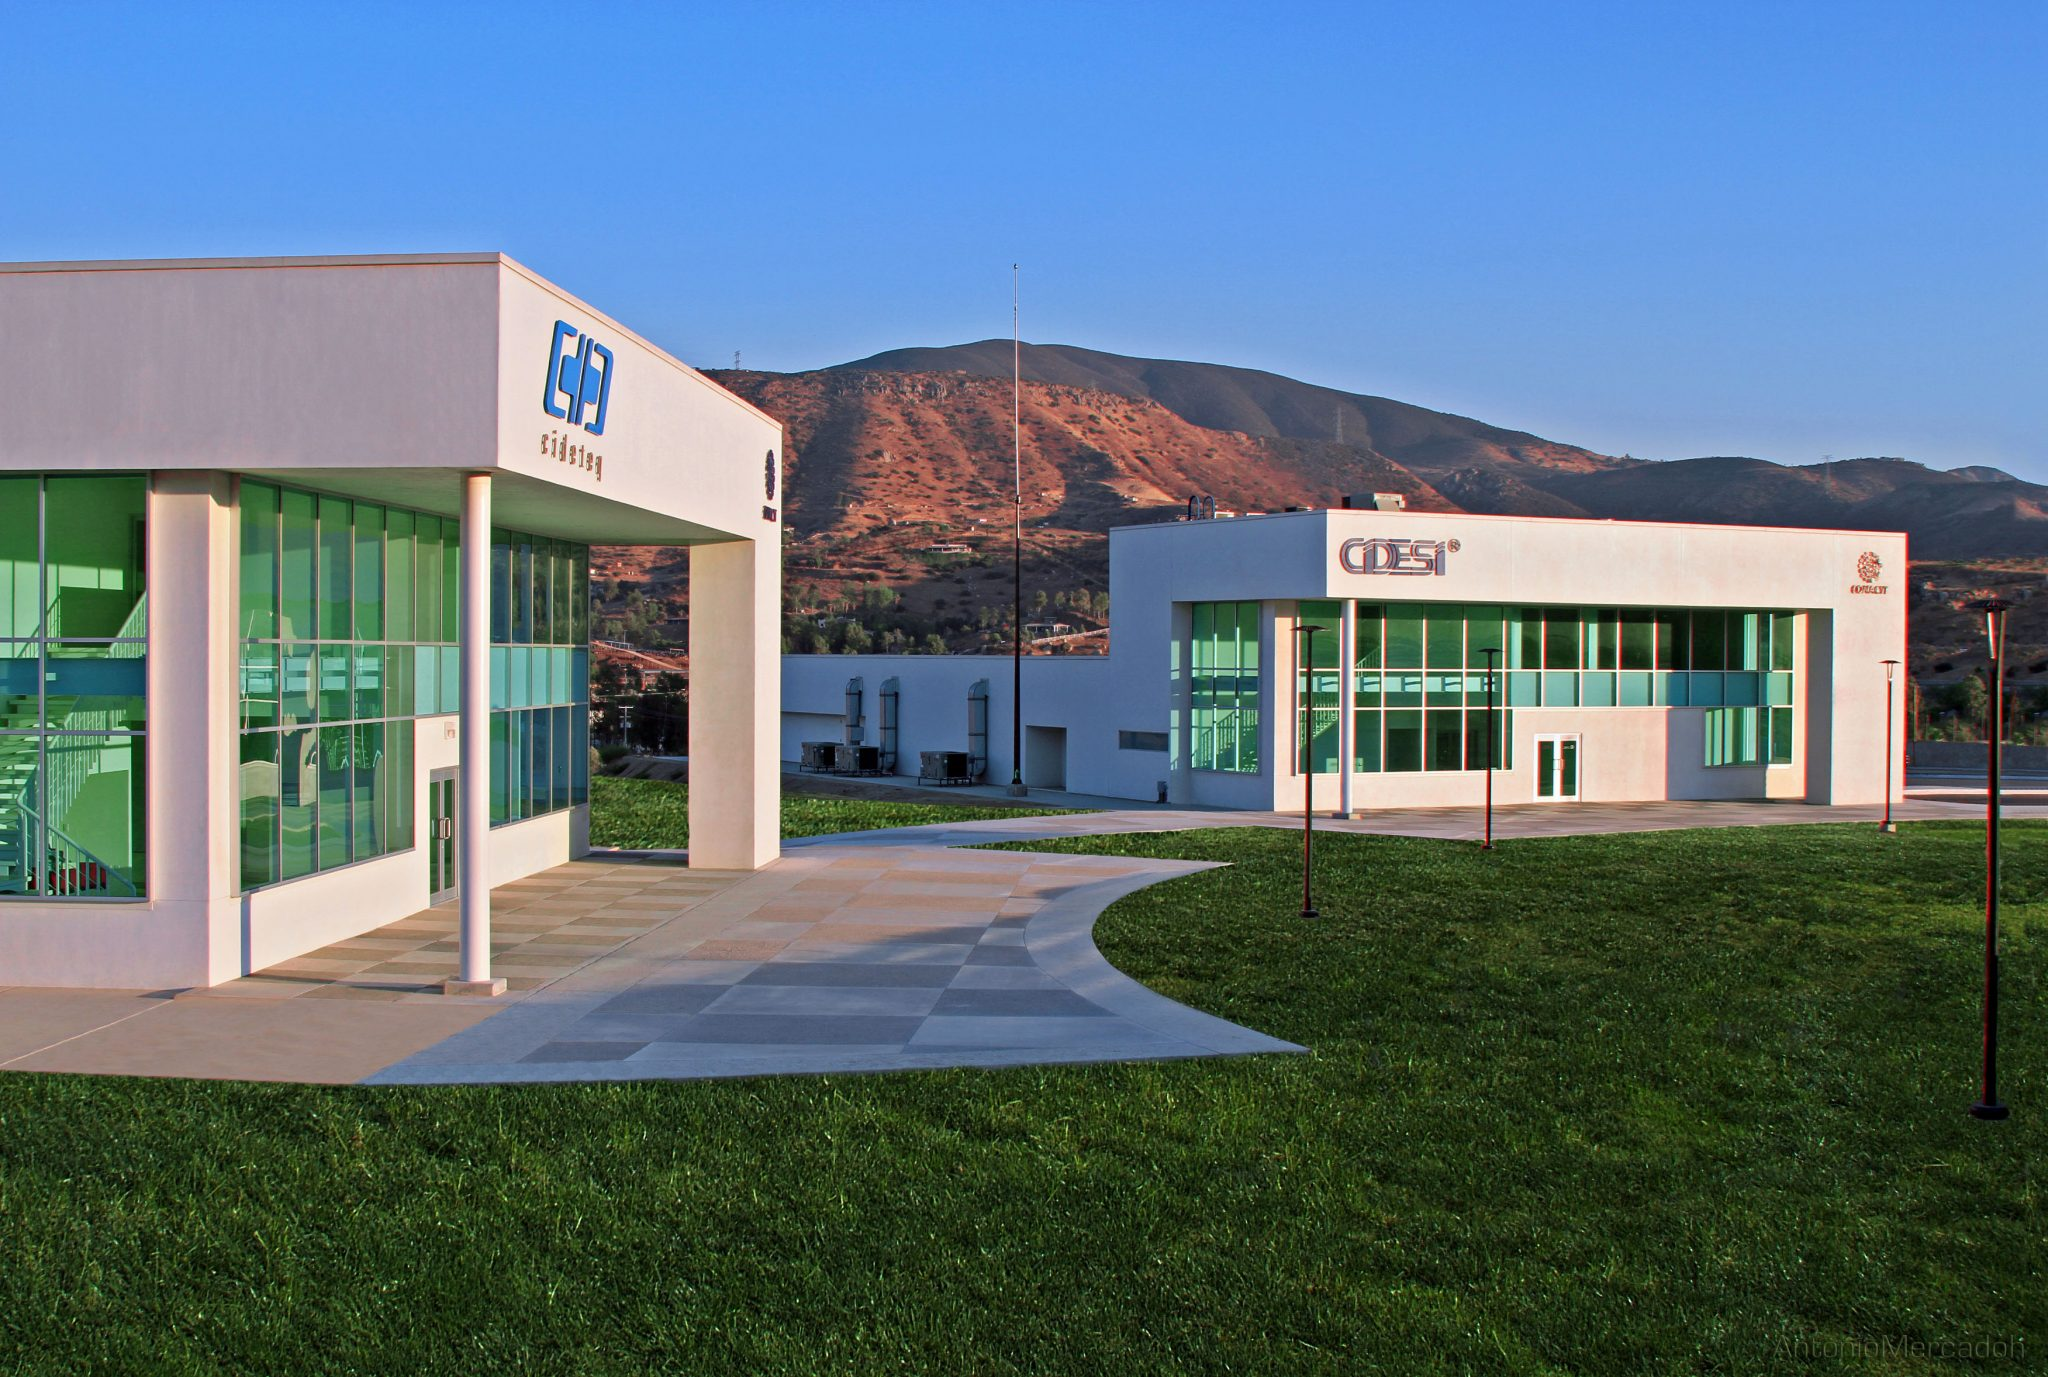 CIDESI Engineering & Research Center buildings in Tijuana, Baja California.